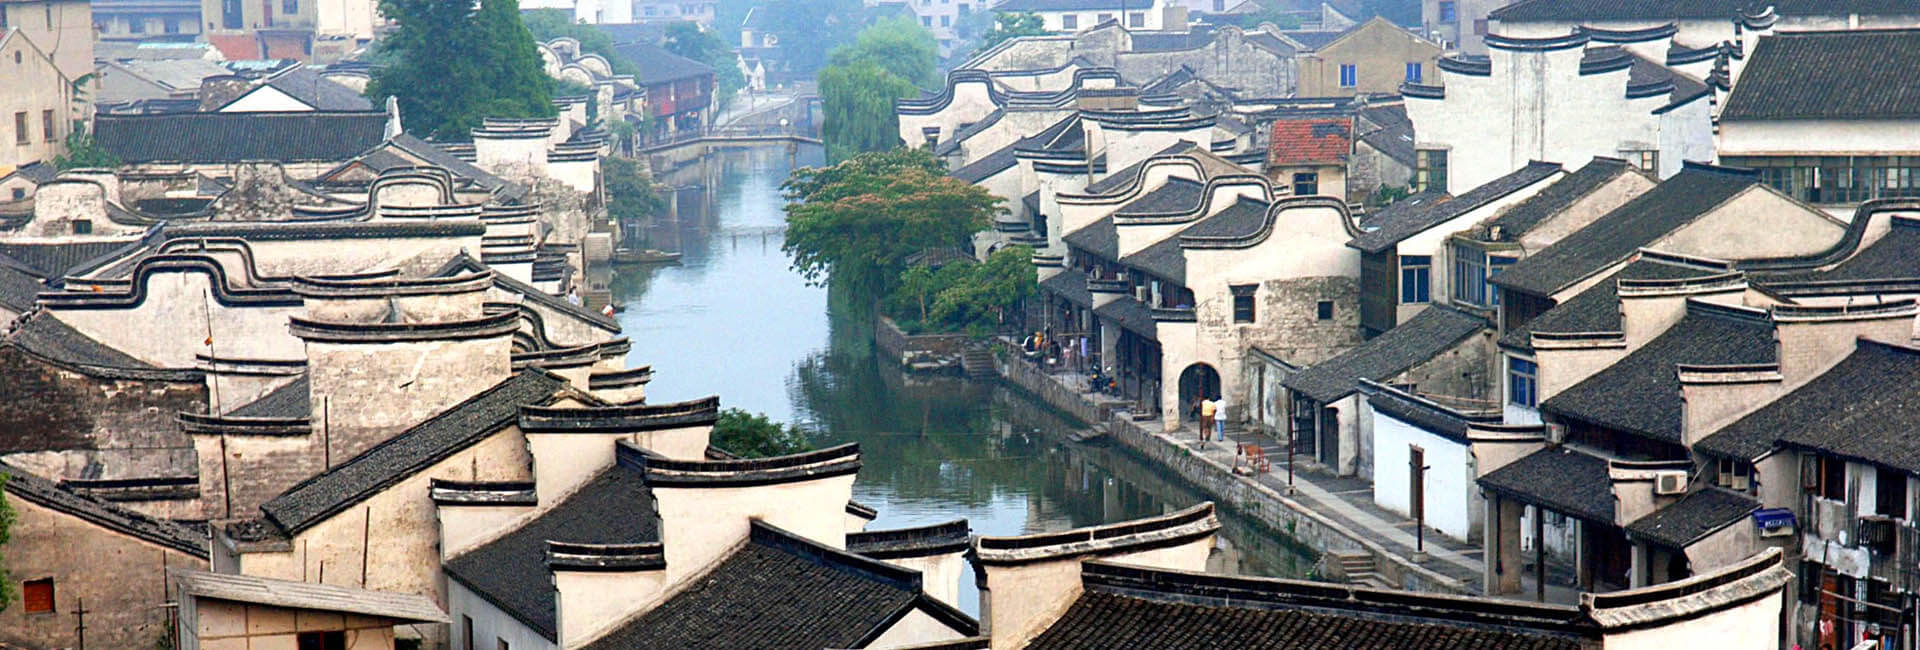 7 Days Shanghai Suzhou Beijing Tour by High Speed Train